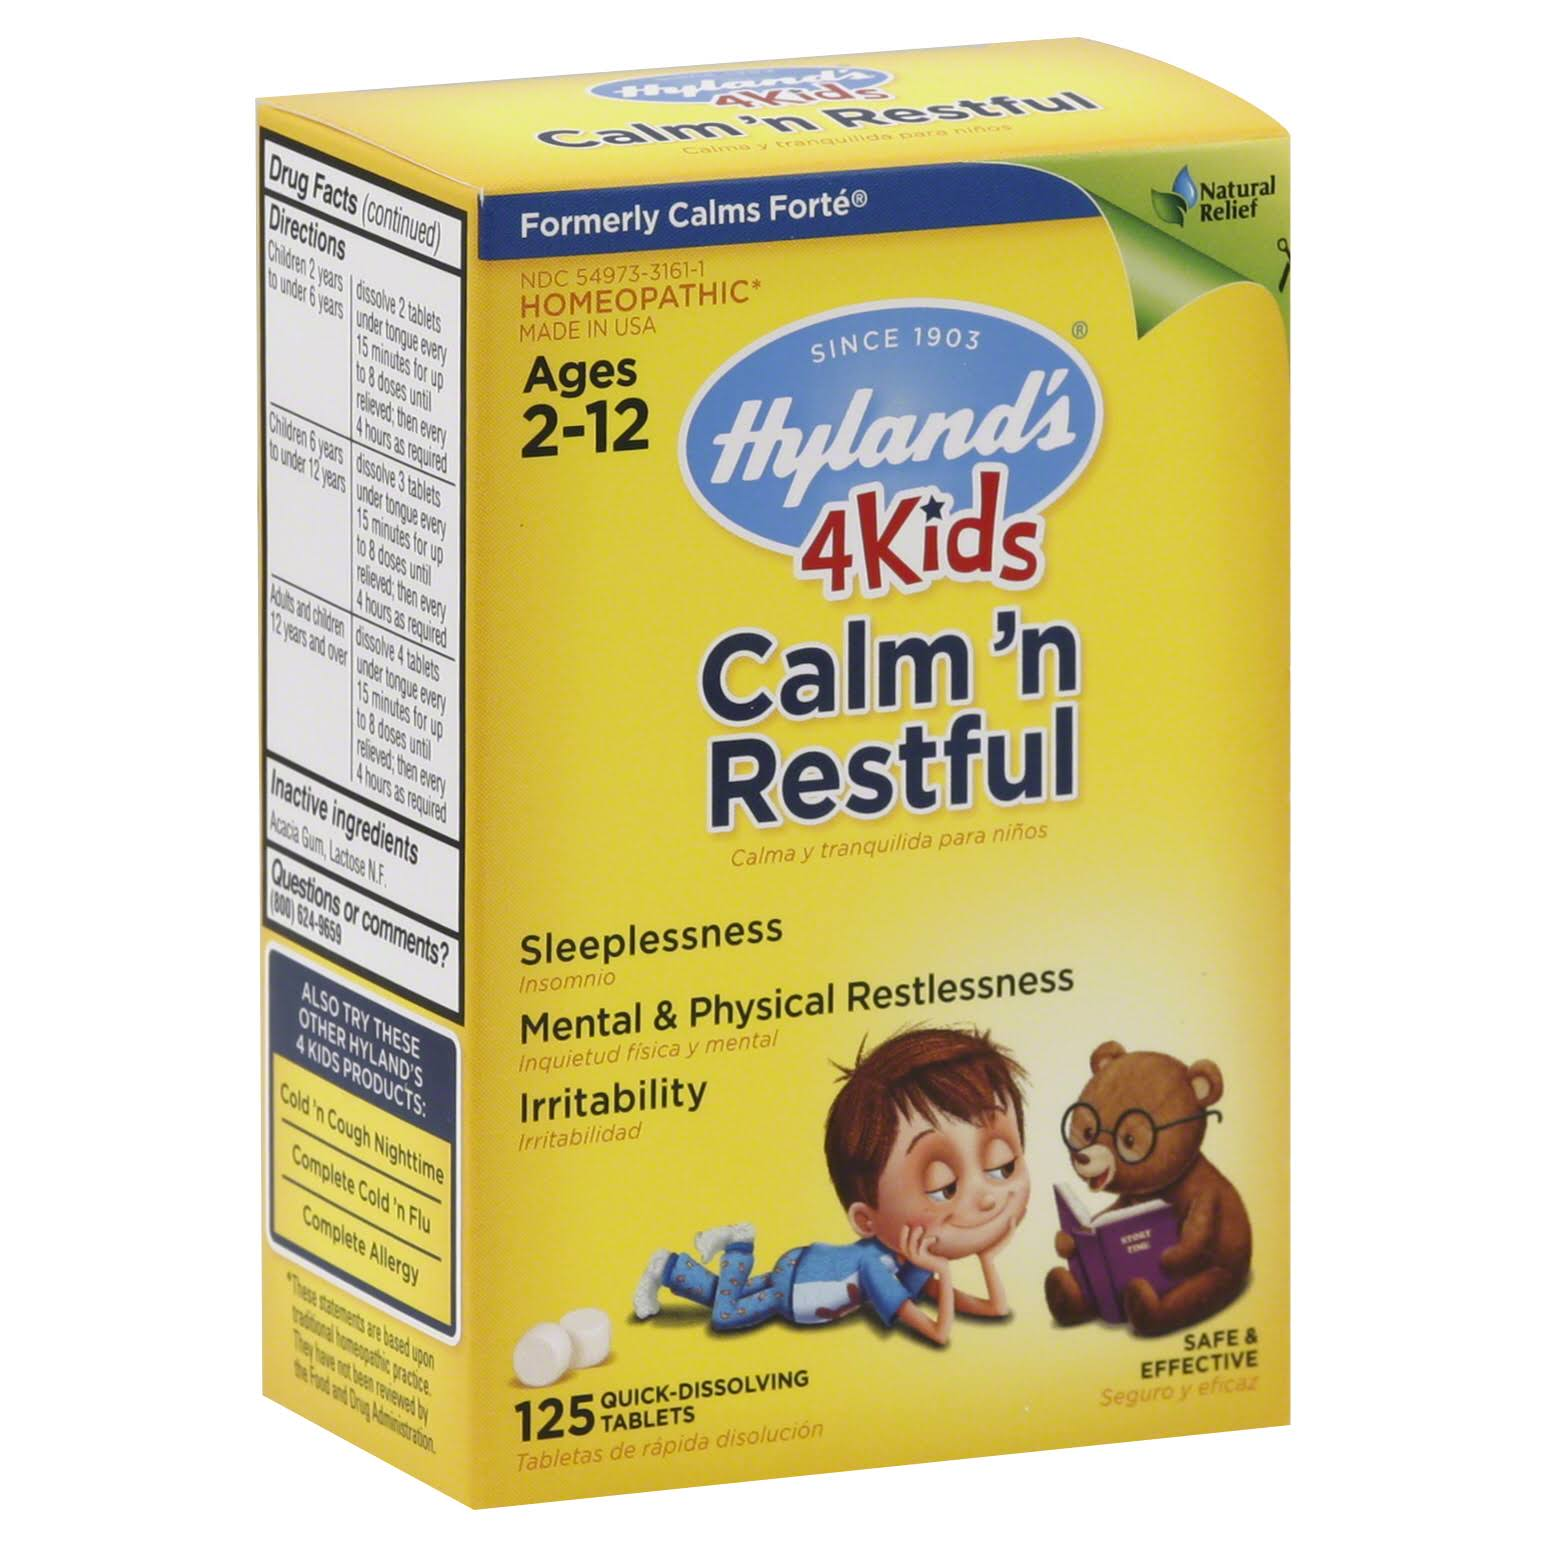 Hyland's 4Kids Calm 'n Restful Tablets - x125